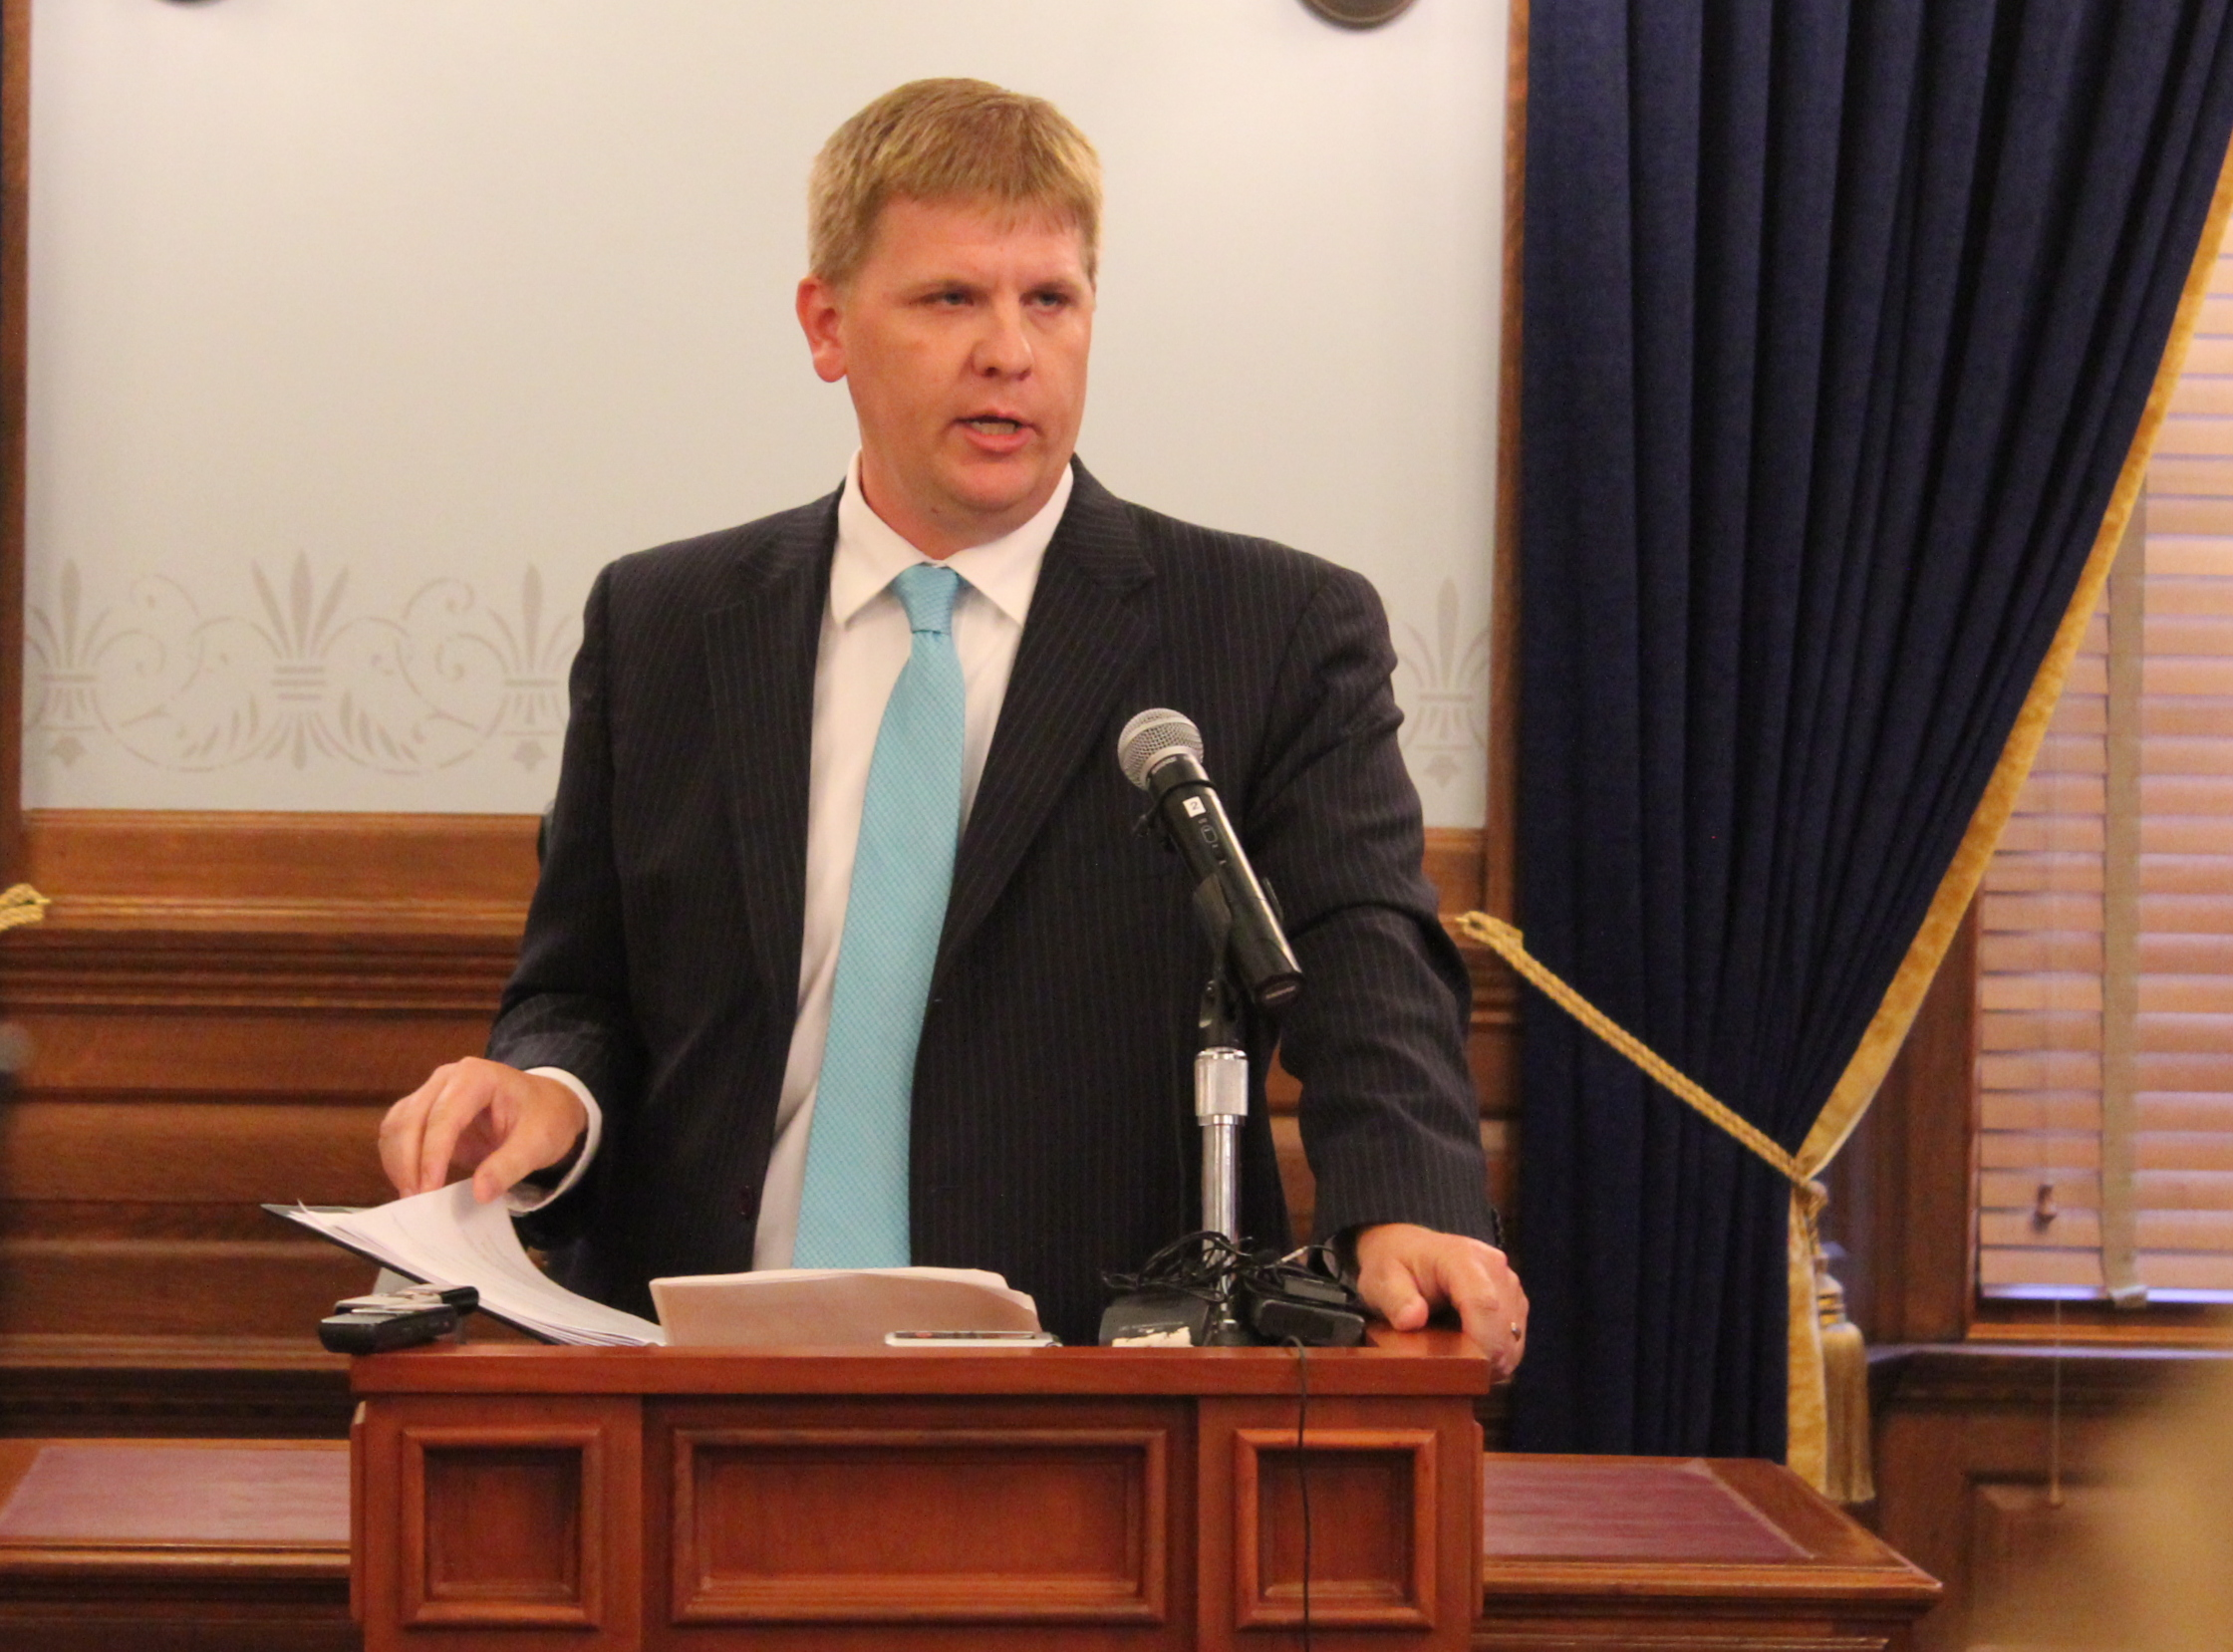 Budget Director Shawn Sullivan outlines the budget changes. (Photo by Stephen Koranda)